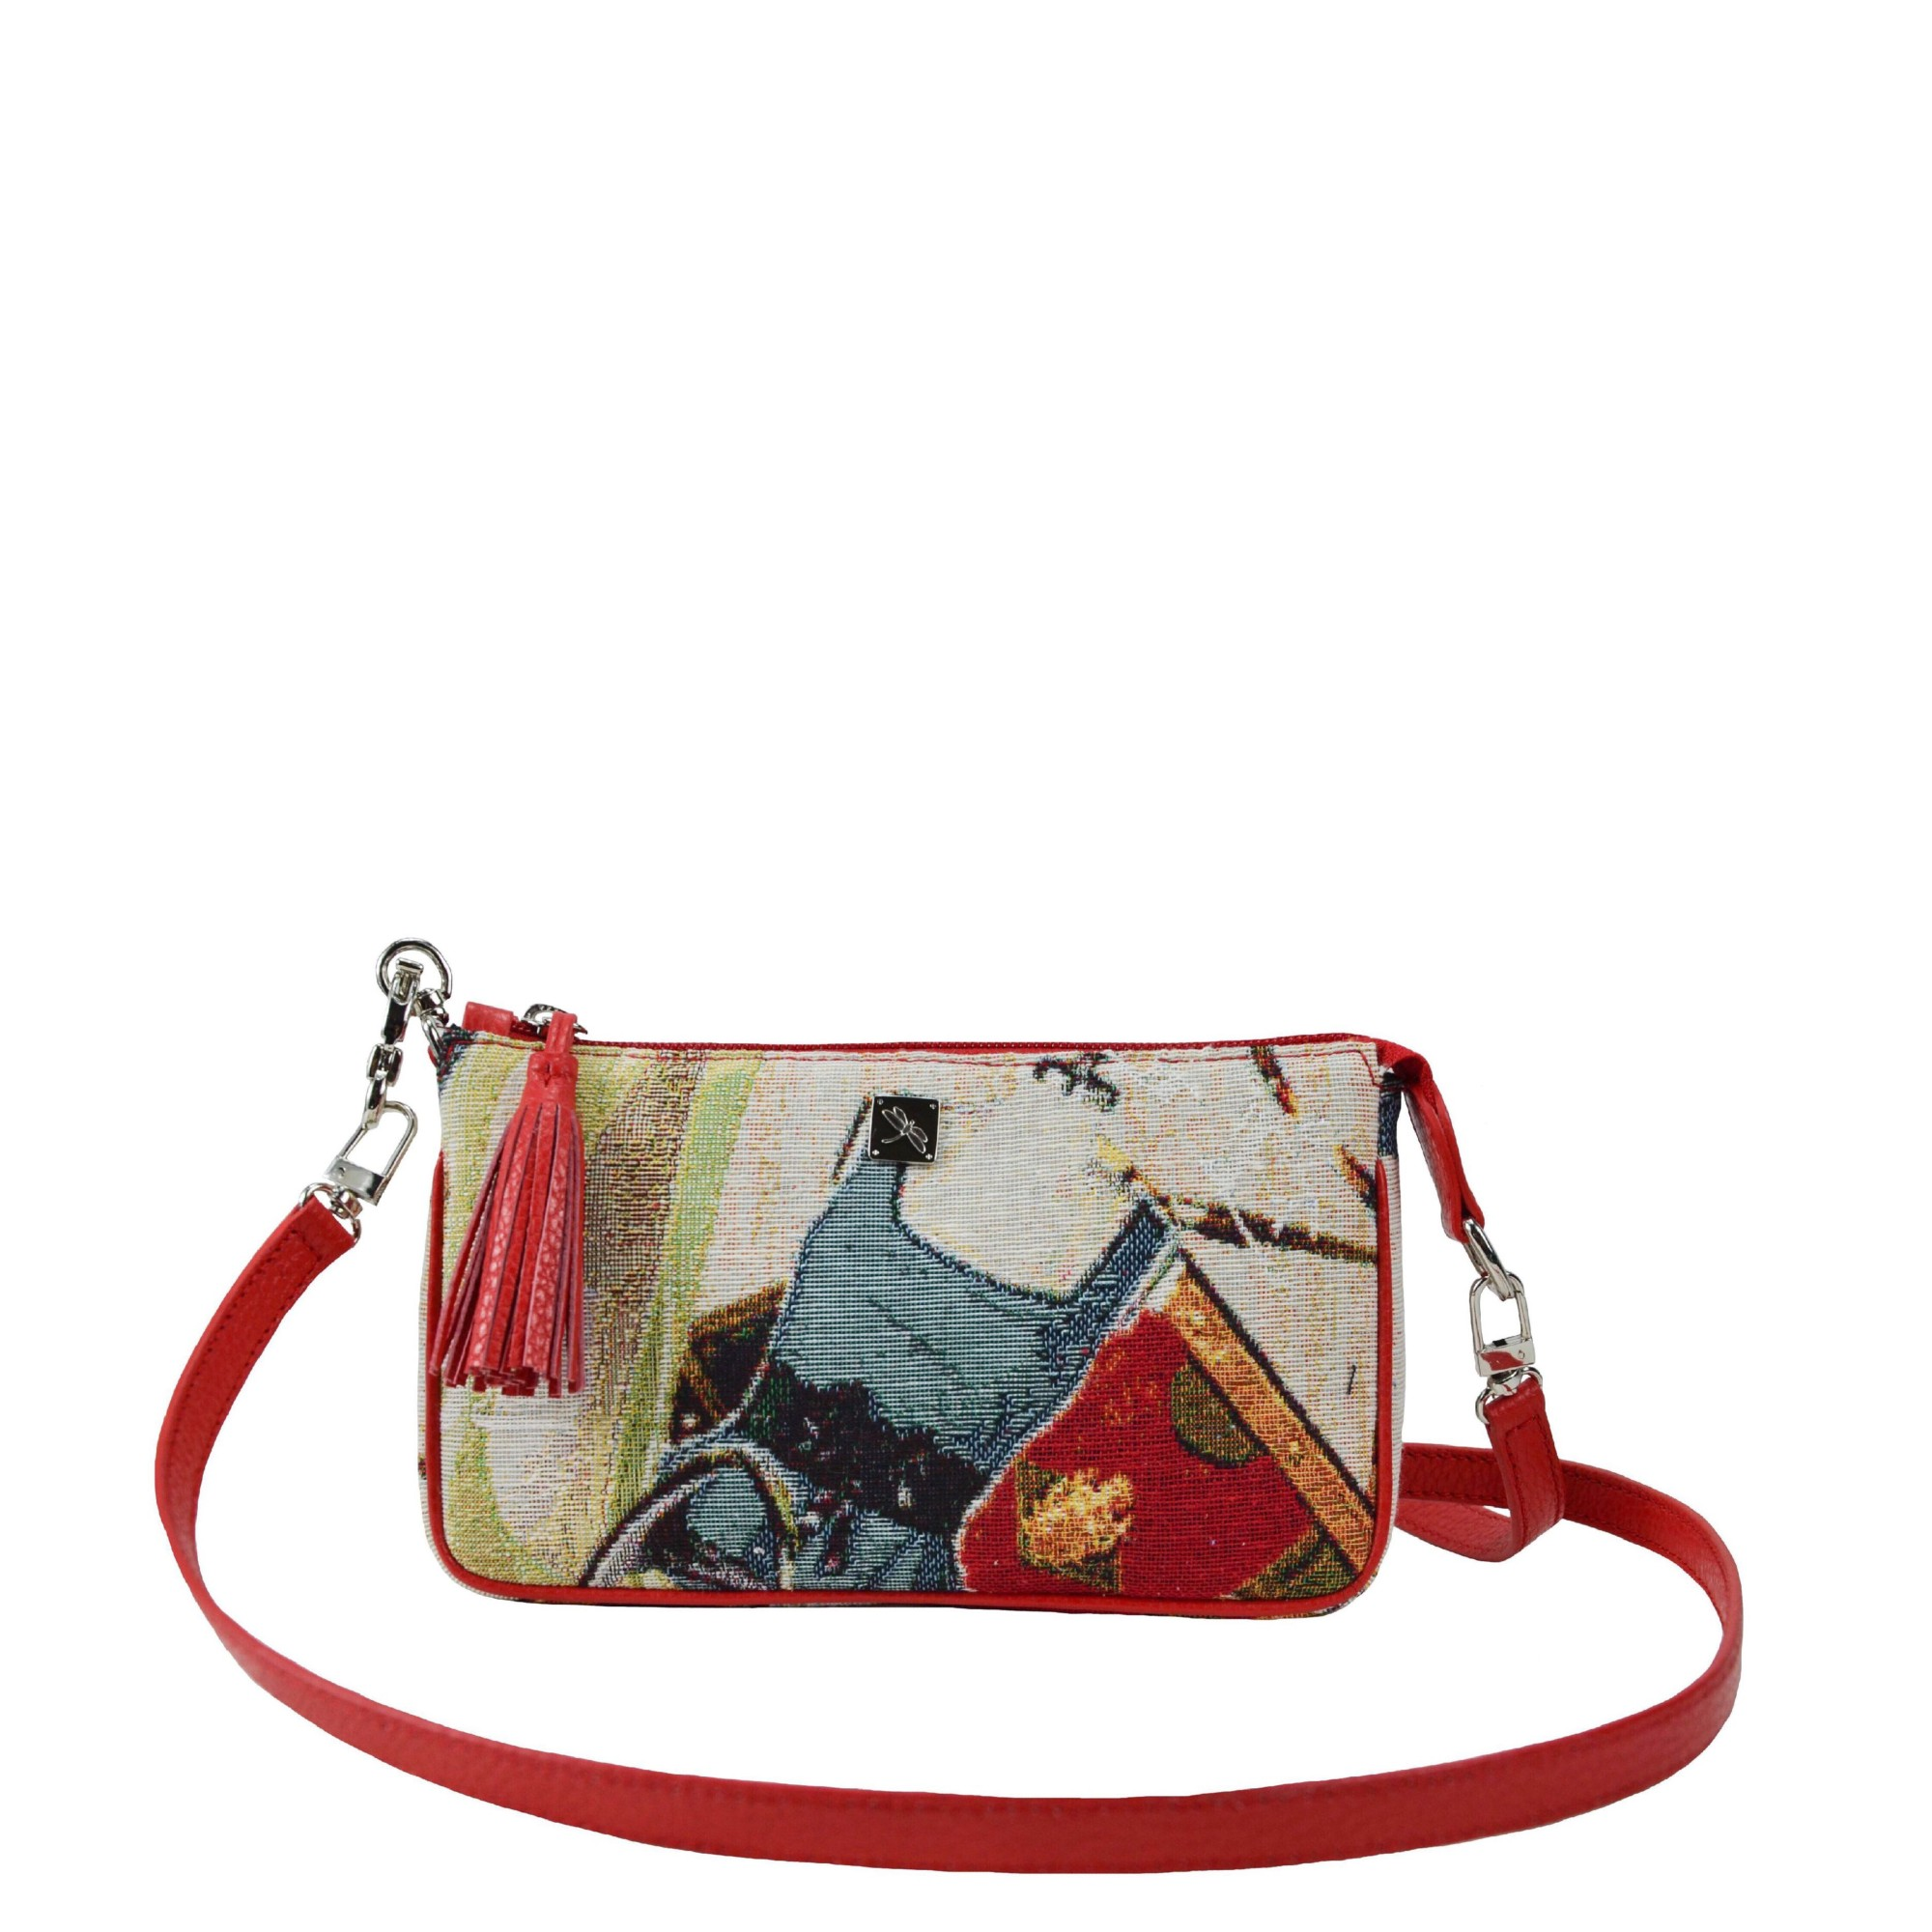 Bea Jacquard Red Crossbody Bag